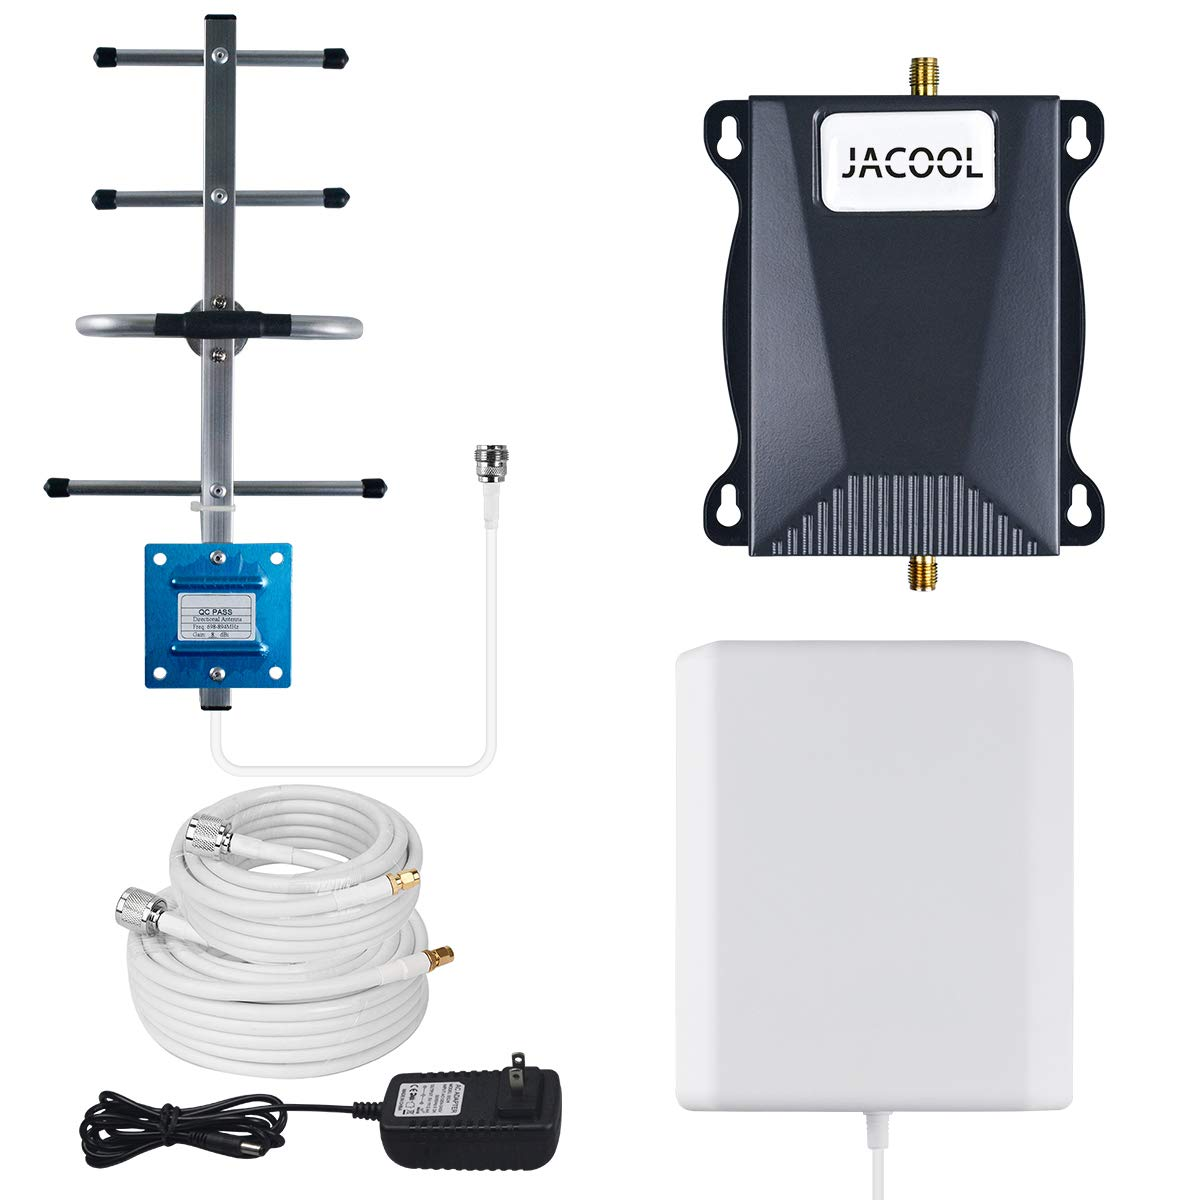 AT&T Signal Booster 4G LTE Cell Phone Signal Booster 700MHz Band 12/17 ATT T-Mobile Cellphone Booster Amplifier Repeater for Home and Office Use - Say Goodbye to Poor Signal